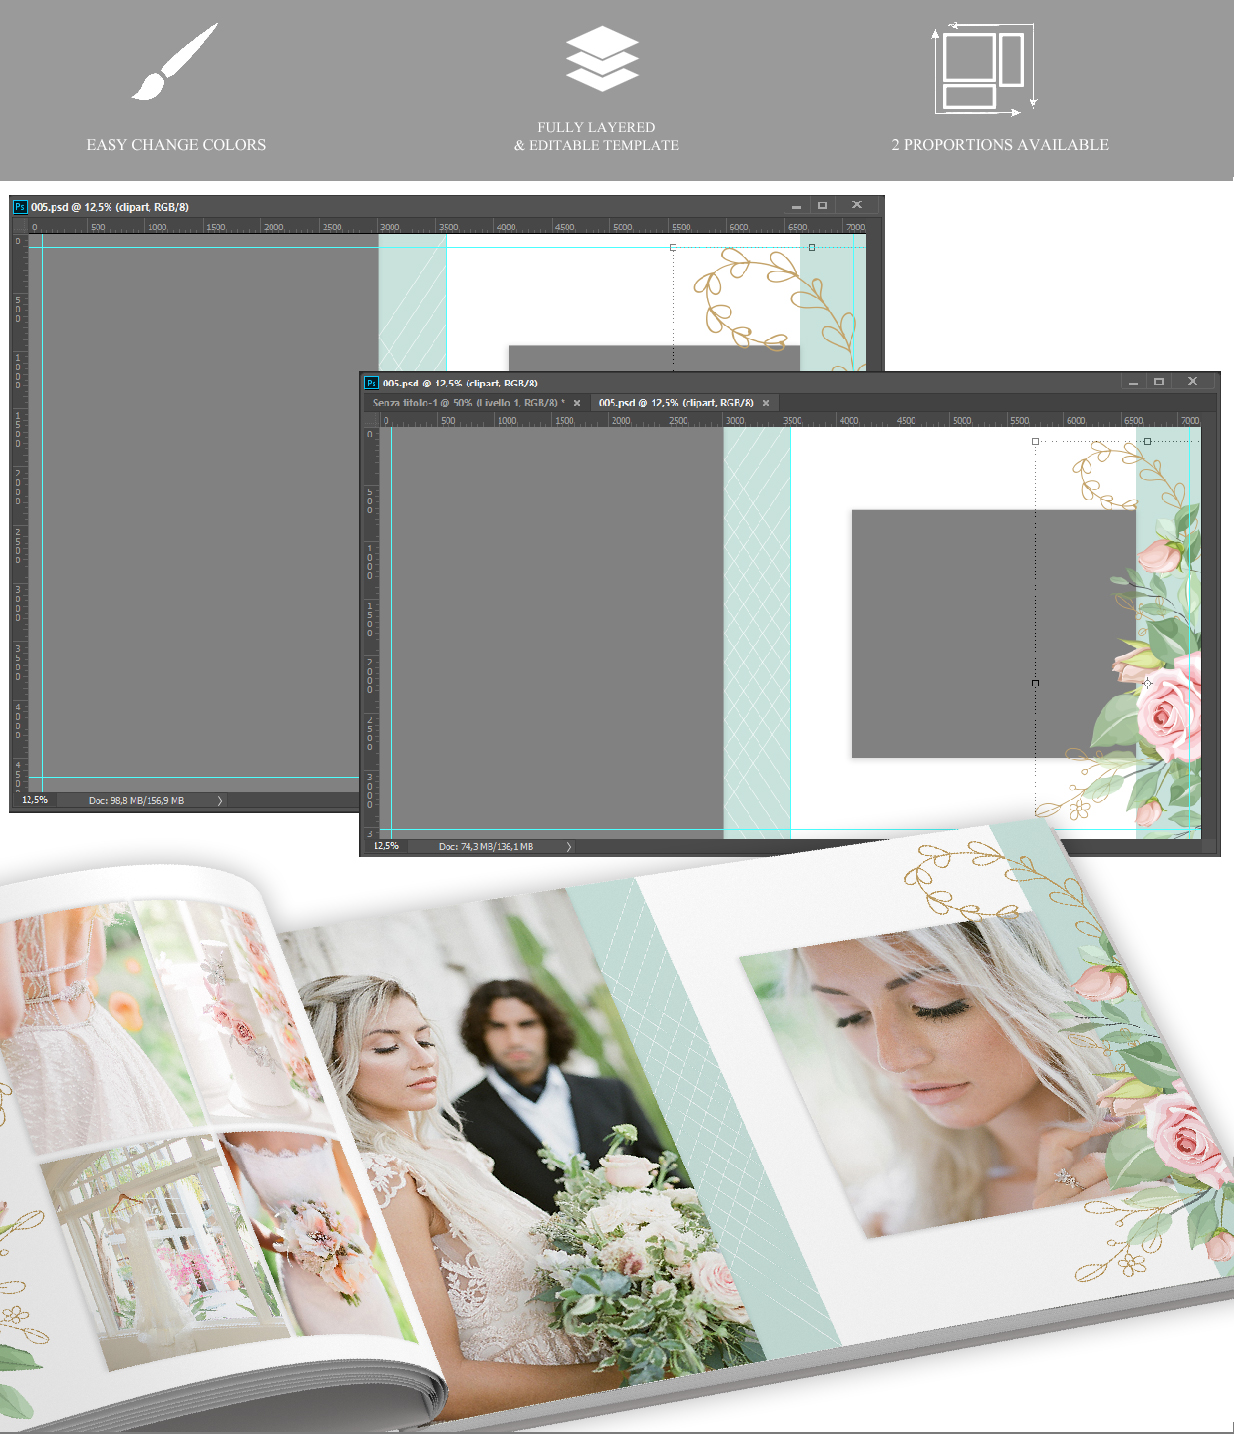 Creative Album v.37 - photo album templates